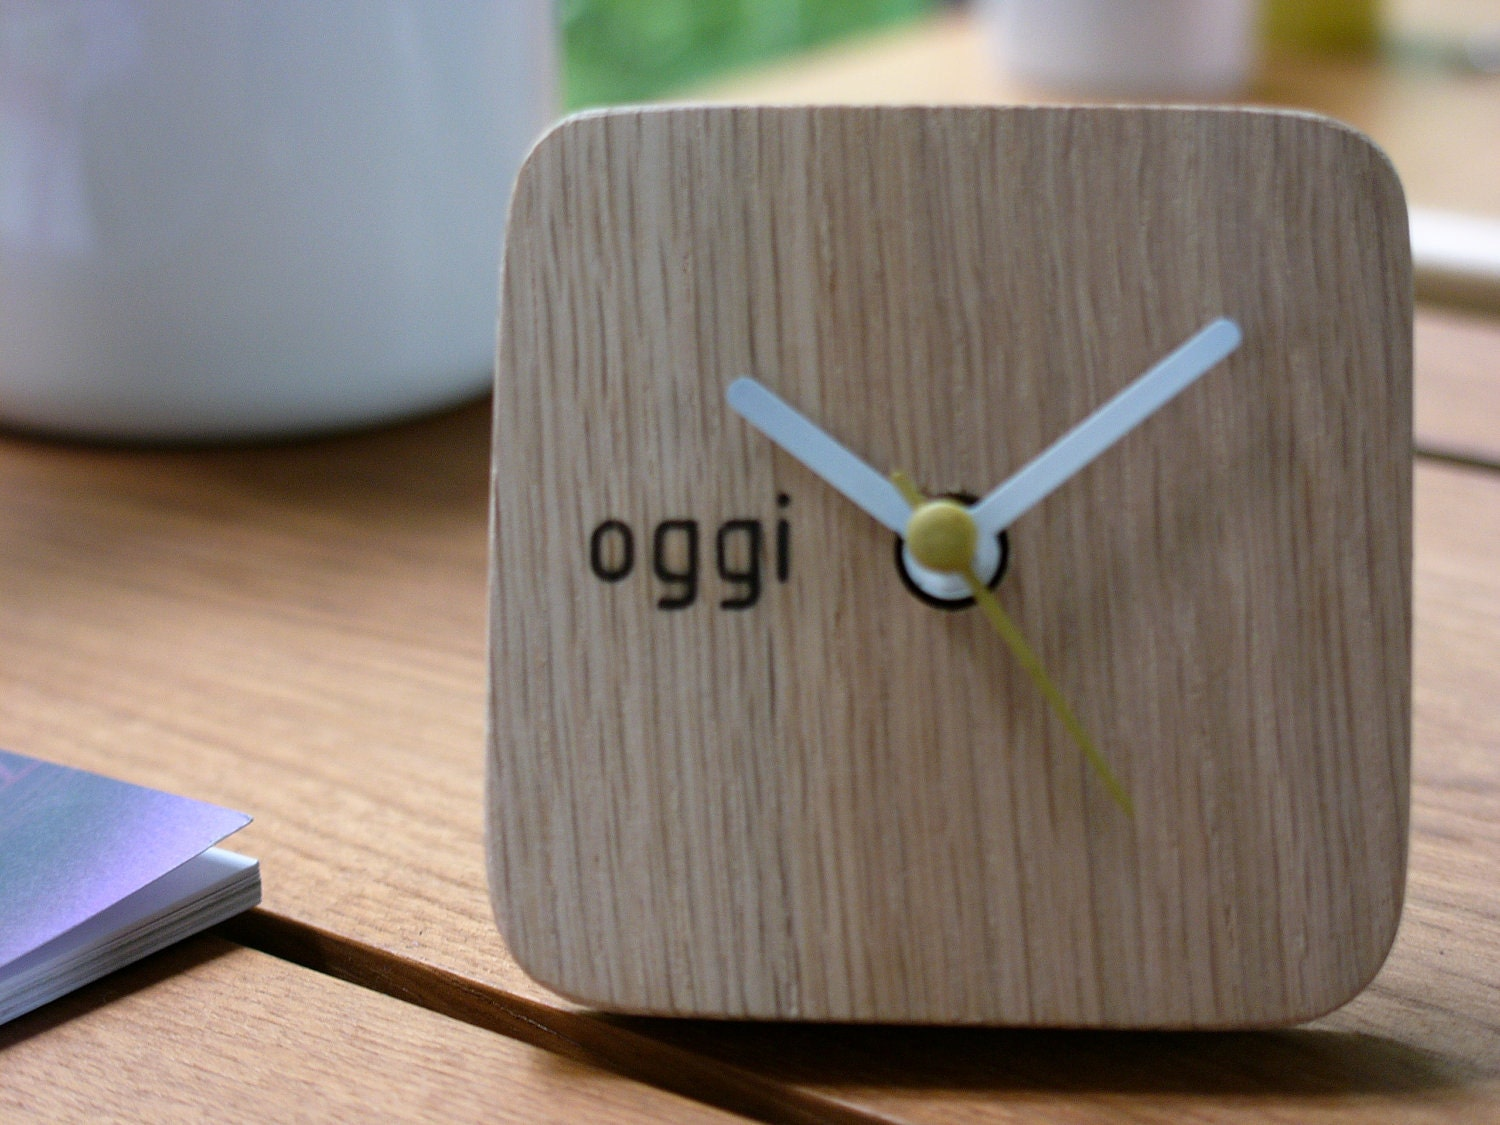 Handmade Wooden Desk Clock Made From Recycle Wood In My